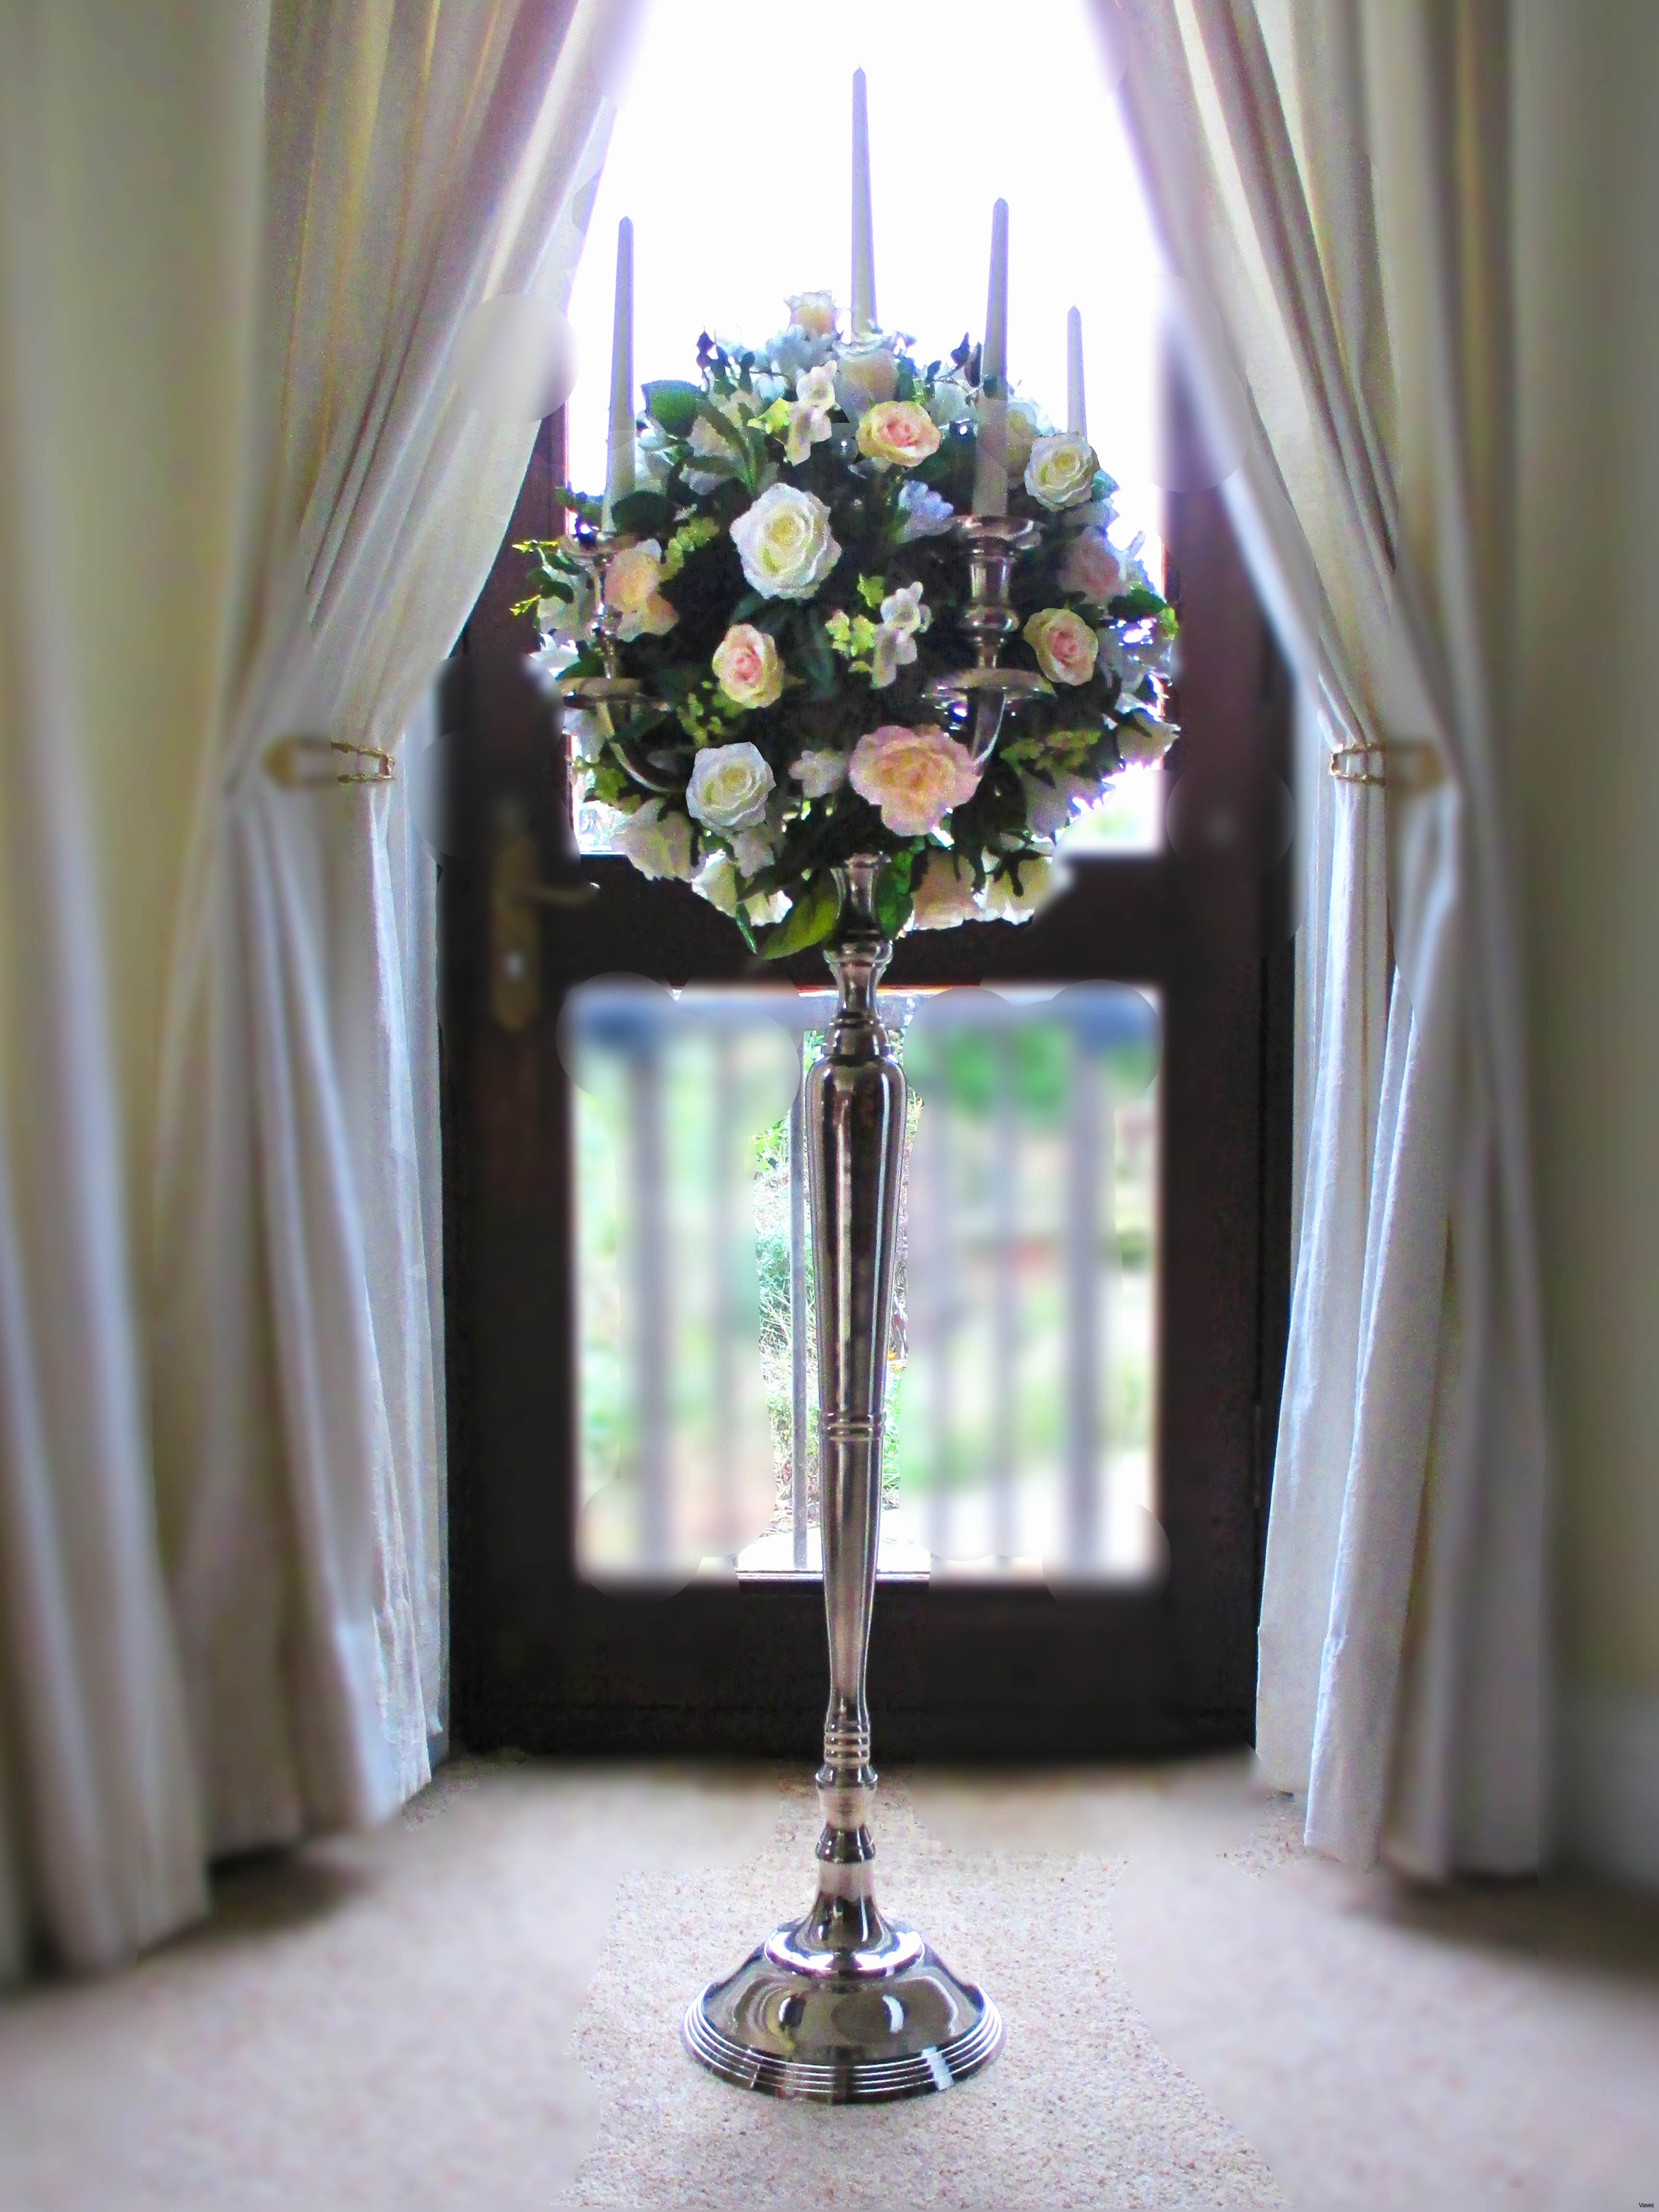 rose vases wholesale of how to budget a wedding fresh wedding wedding a bud luxury mirrored inside bud best easy wedding how to budget a wedding inspirational cheap wedding bouquets packages 5397h vases silver vase leeds i